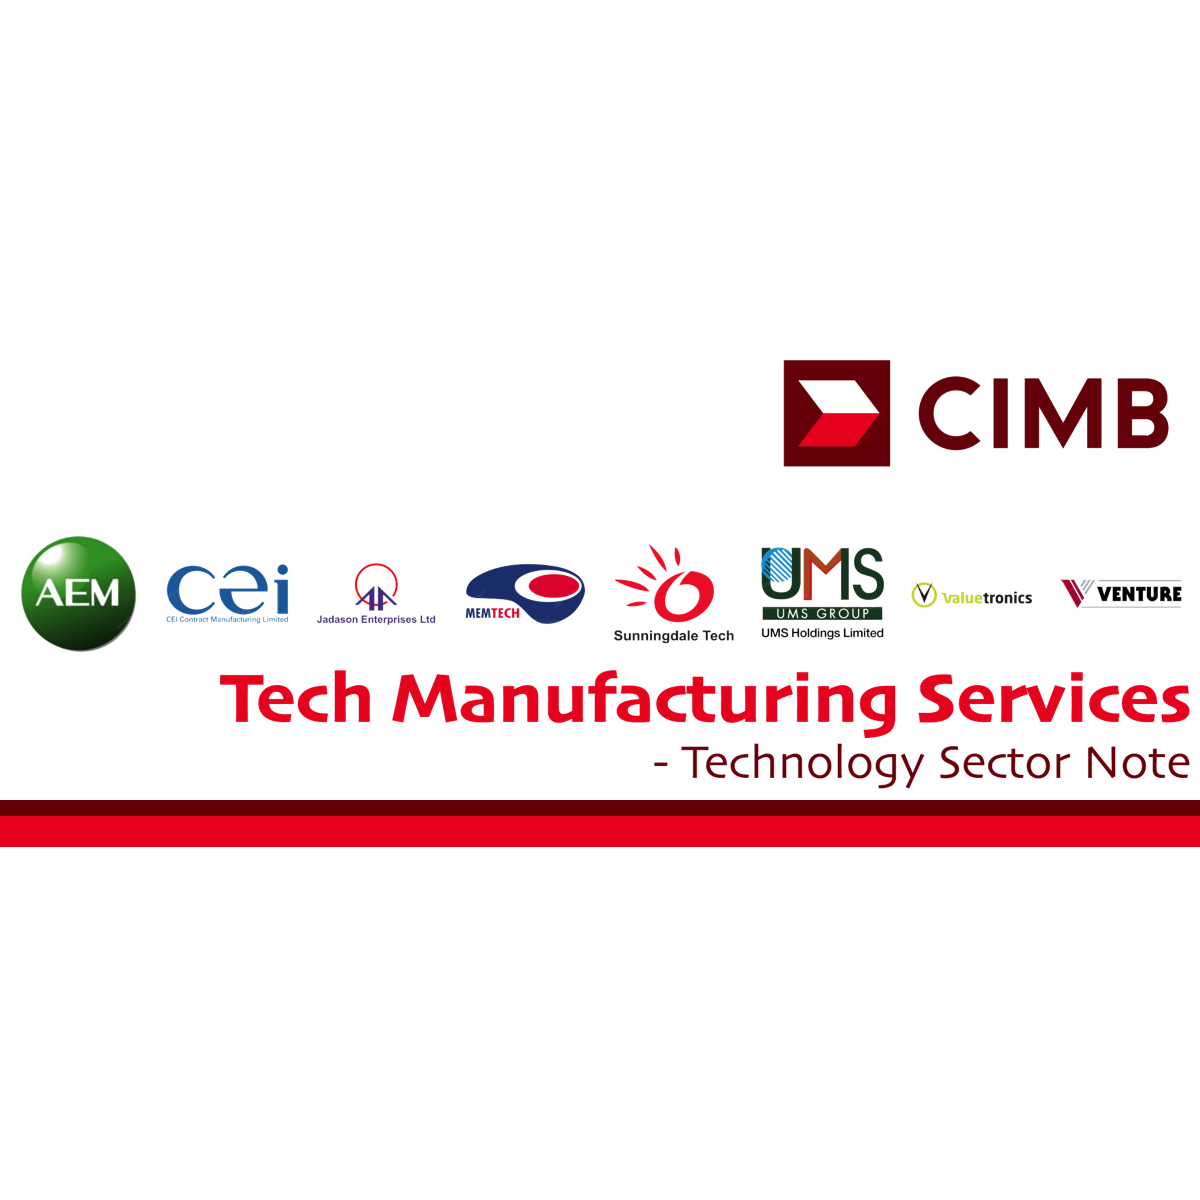 Tech Manufacturing Services - CIMB Research 2017-08-03: Expecting Good 2Q17 Results